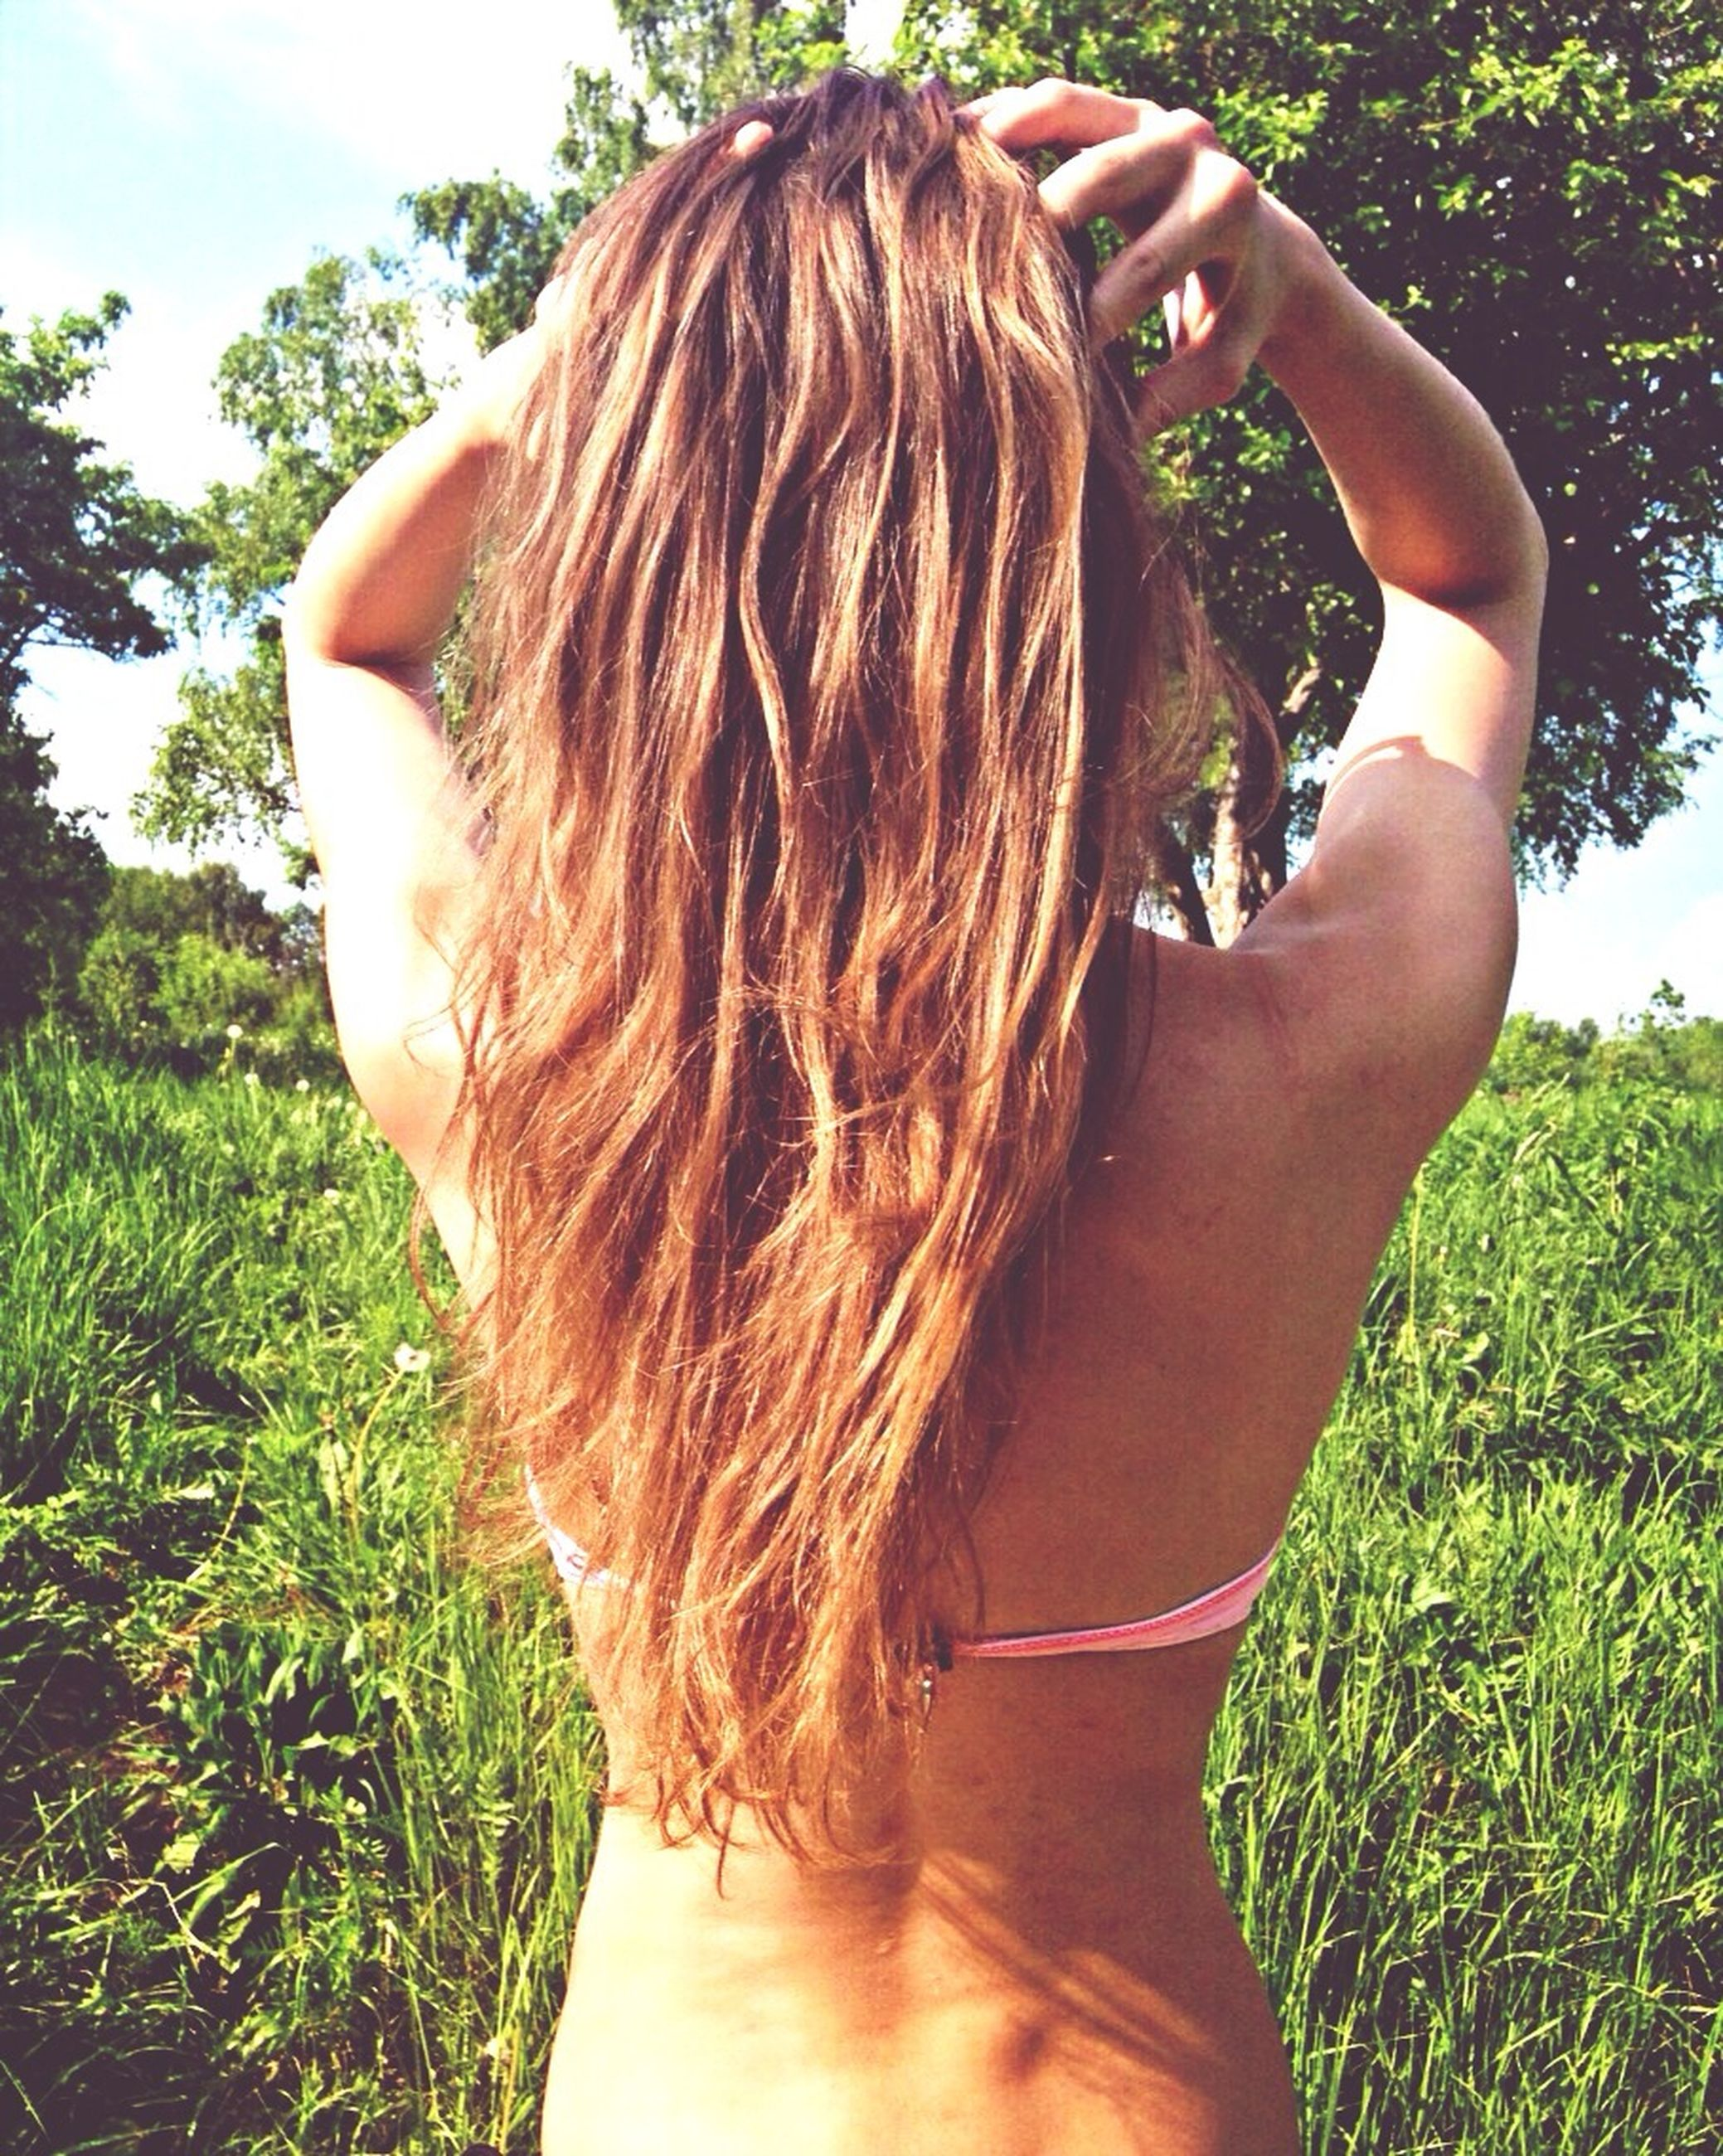 long hair, lifestyles, leisure activity, grass, person, young women, rear view, field, brown hair, blond hair, young adult, human hair, sunlight, sky, outdoors, day, plant